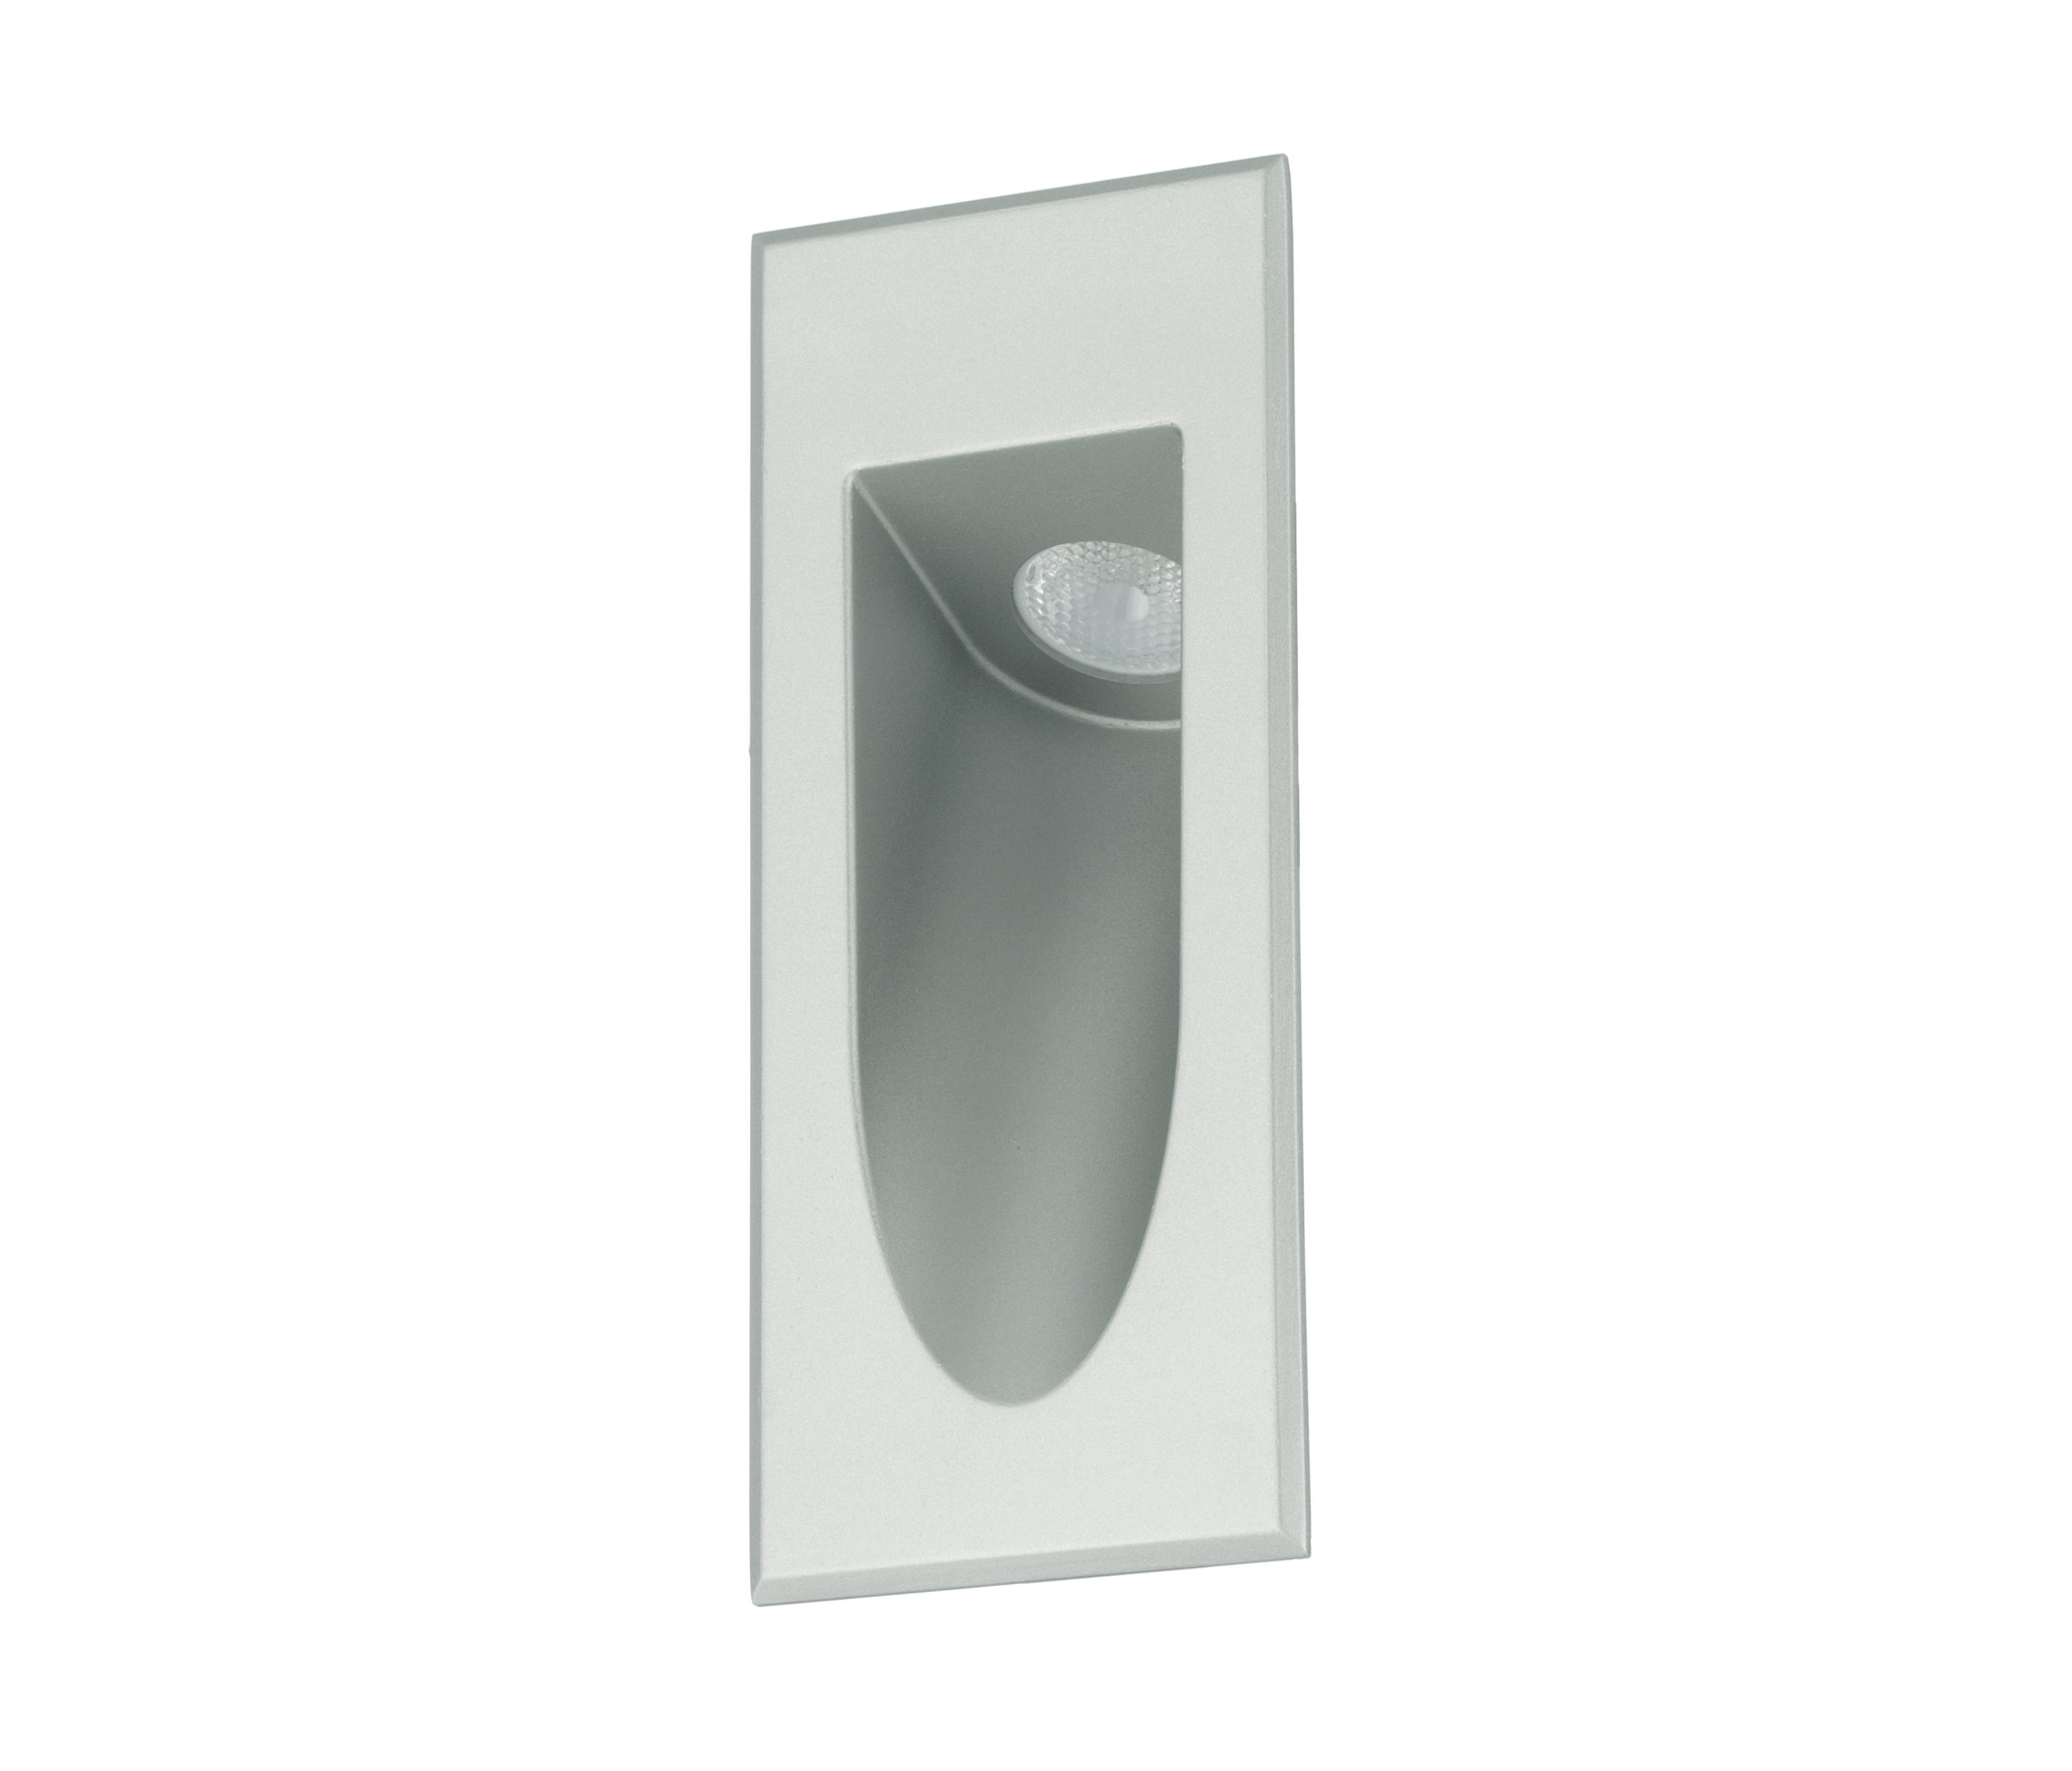 Q led wall built in lamp recessed wall lights from unex architonic q led wall built in lamp by unex recessed wall lights aloadofball Image collections